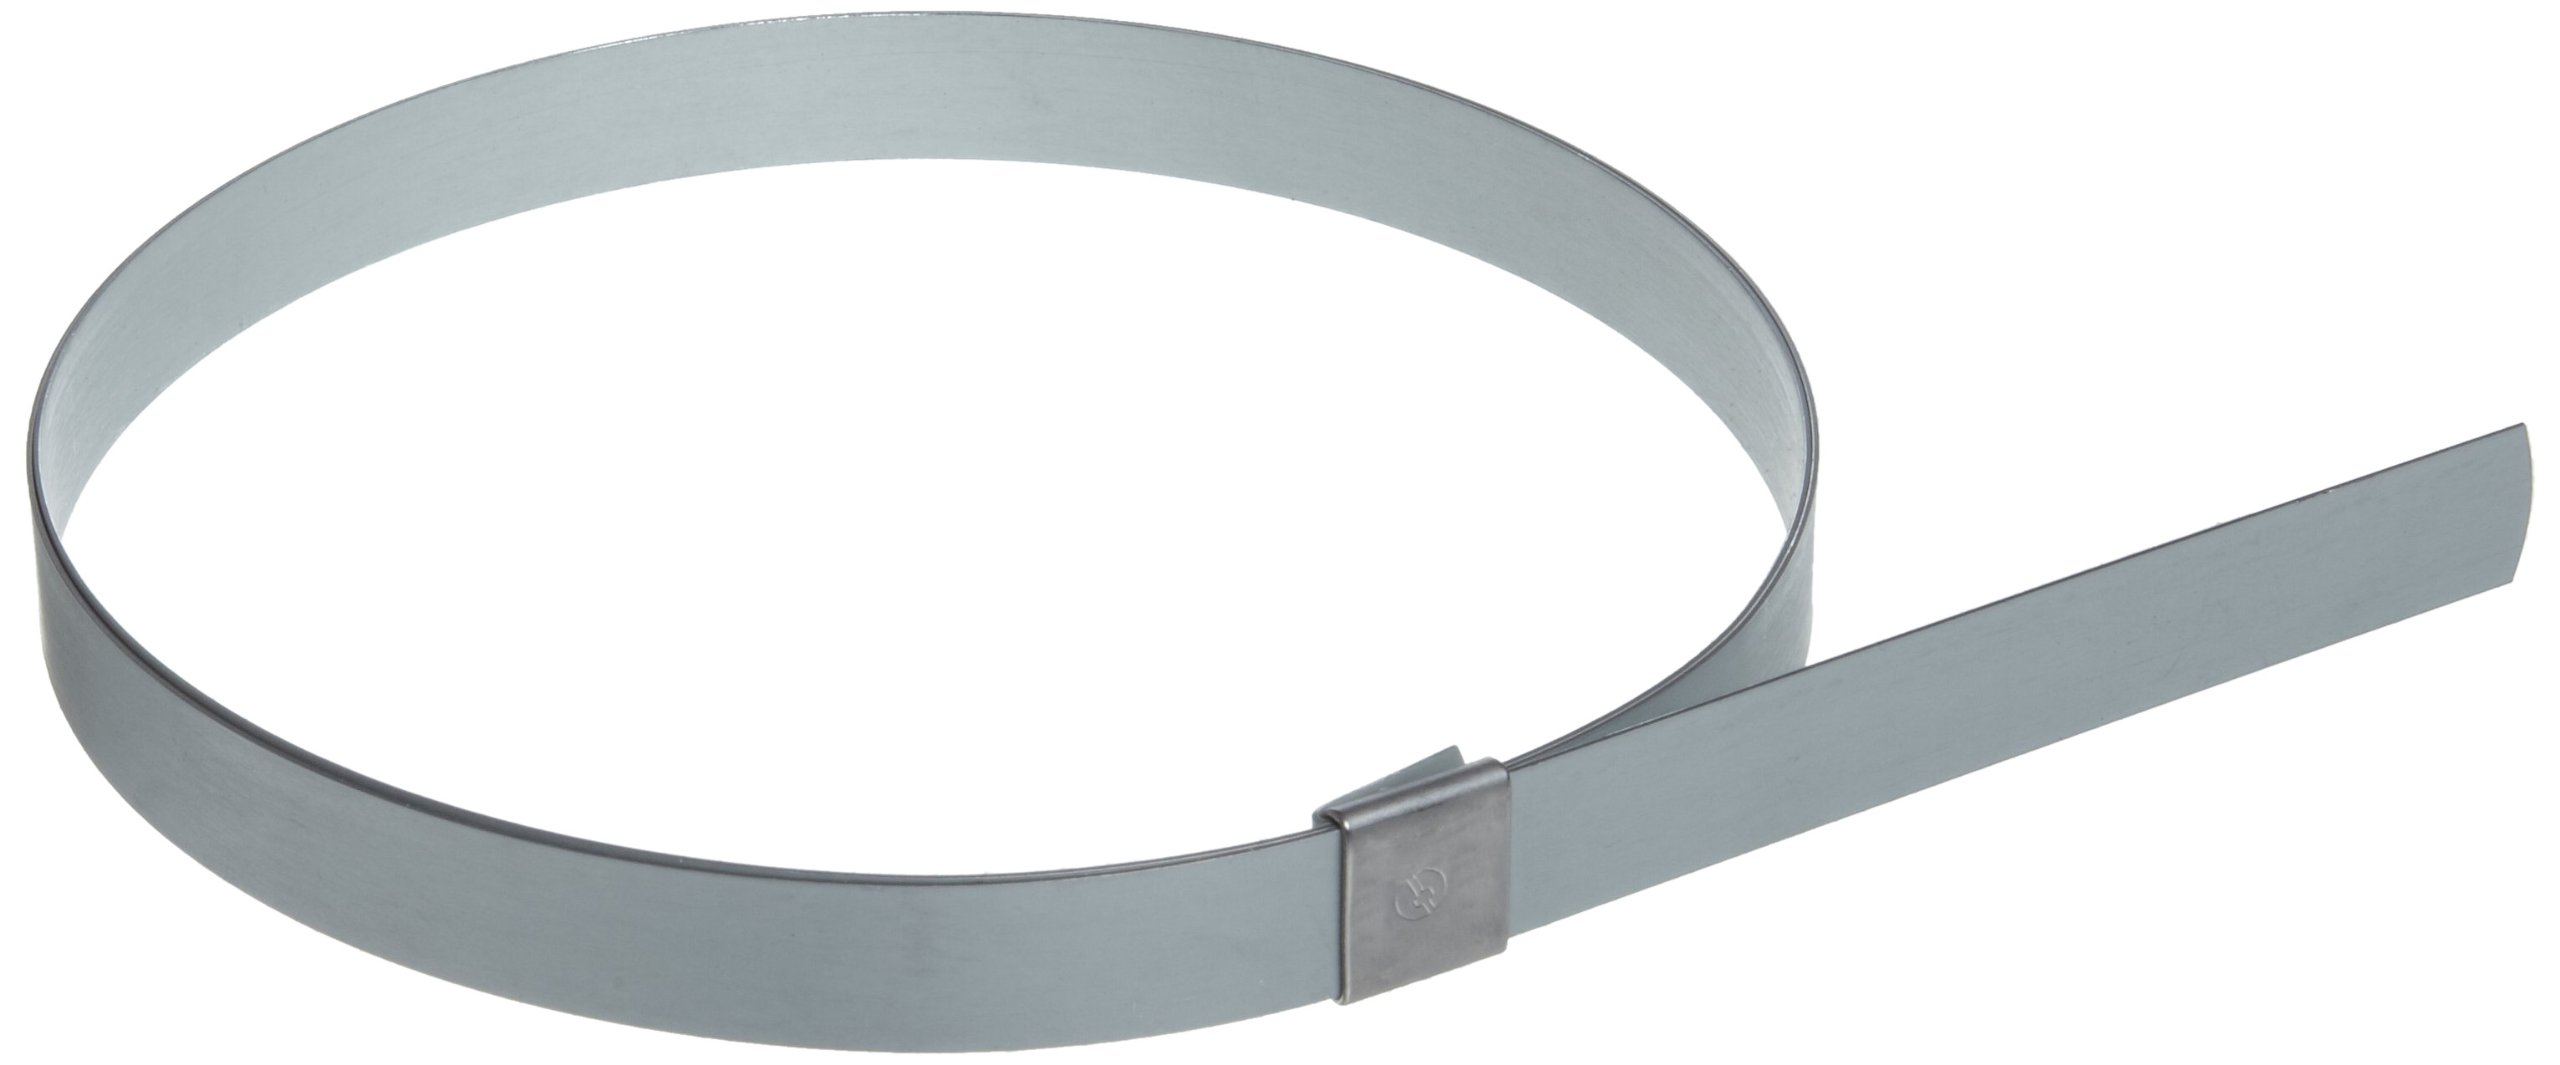 BAND-IT CP2499 5/8'' Wide x 0.025'' Thick 6'' Diameter, Galvanized Carbon Steel Center Punch Clamp (25 Per Box)